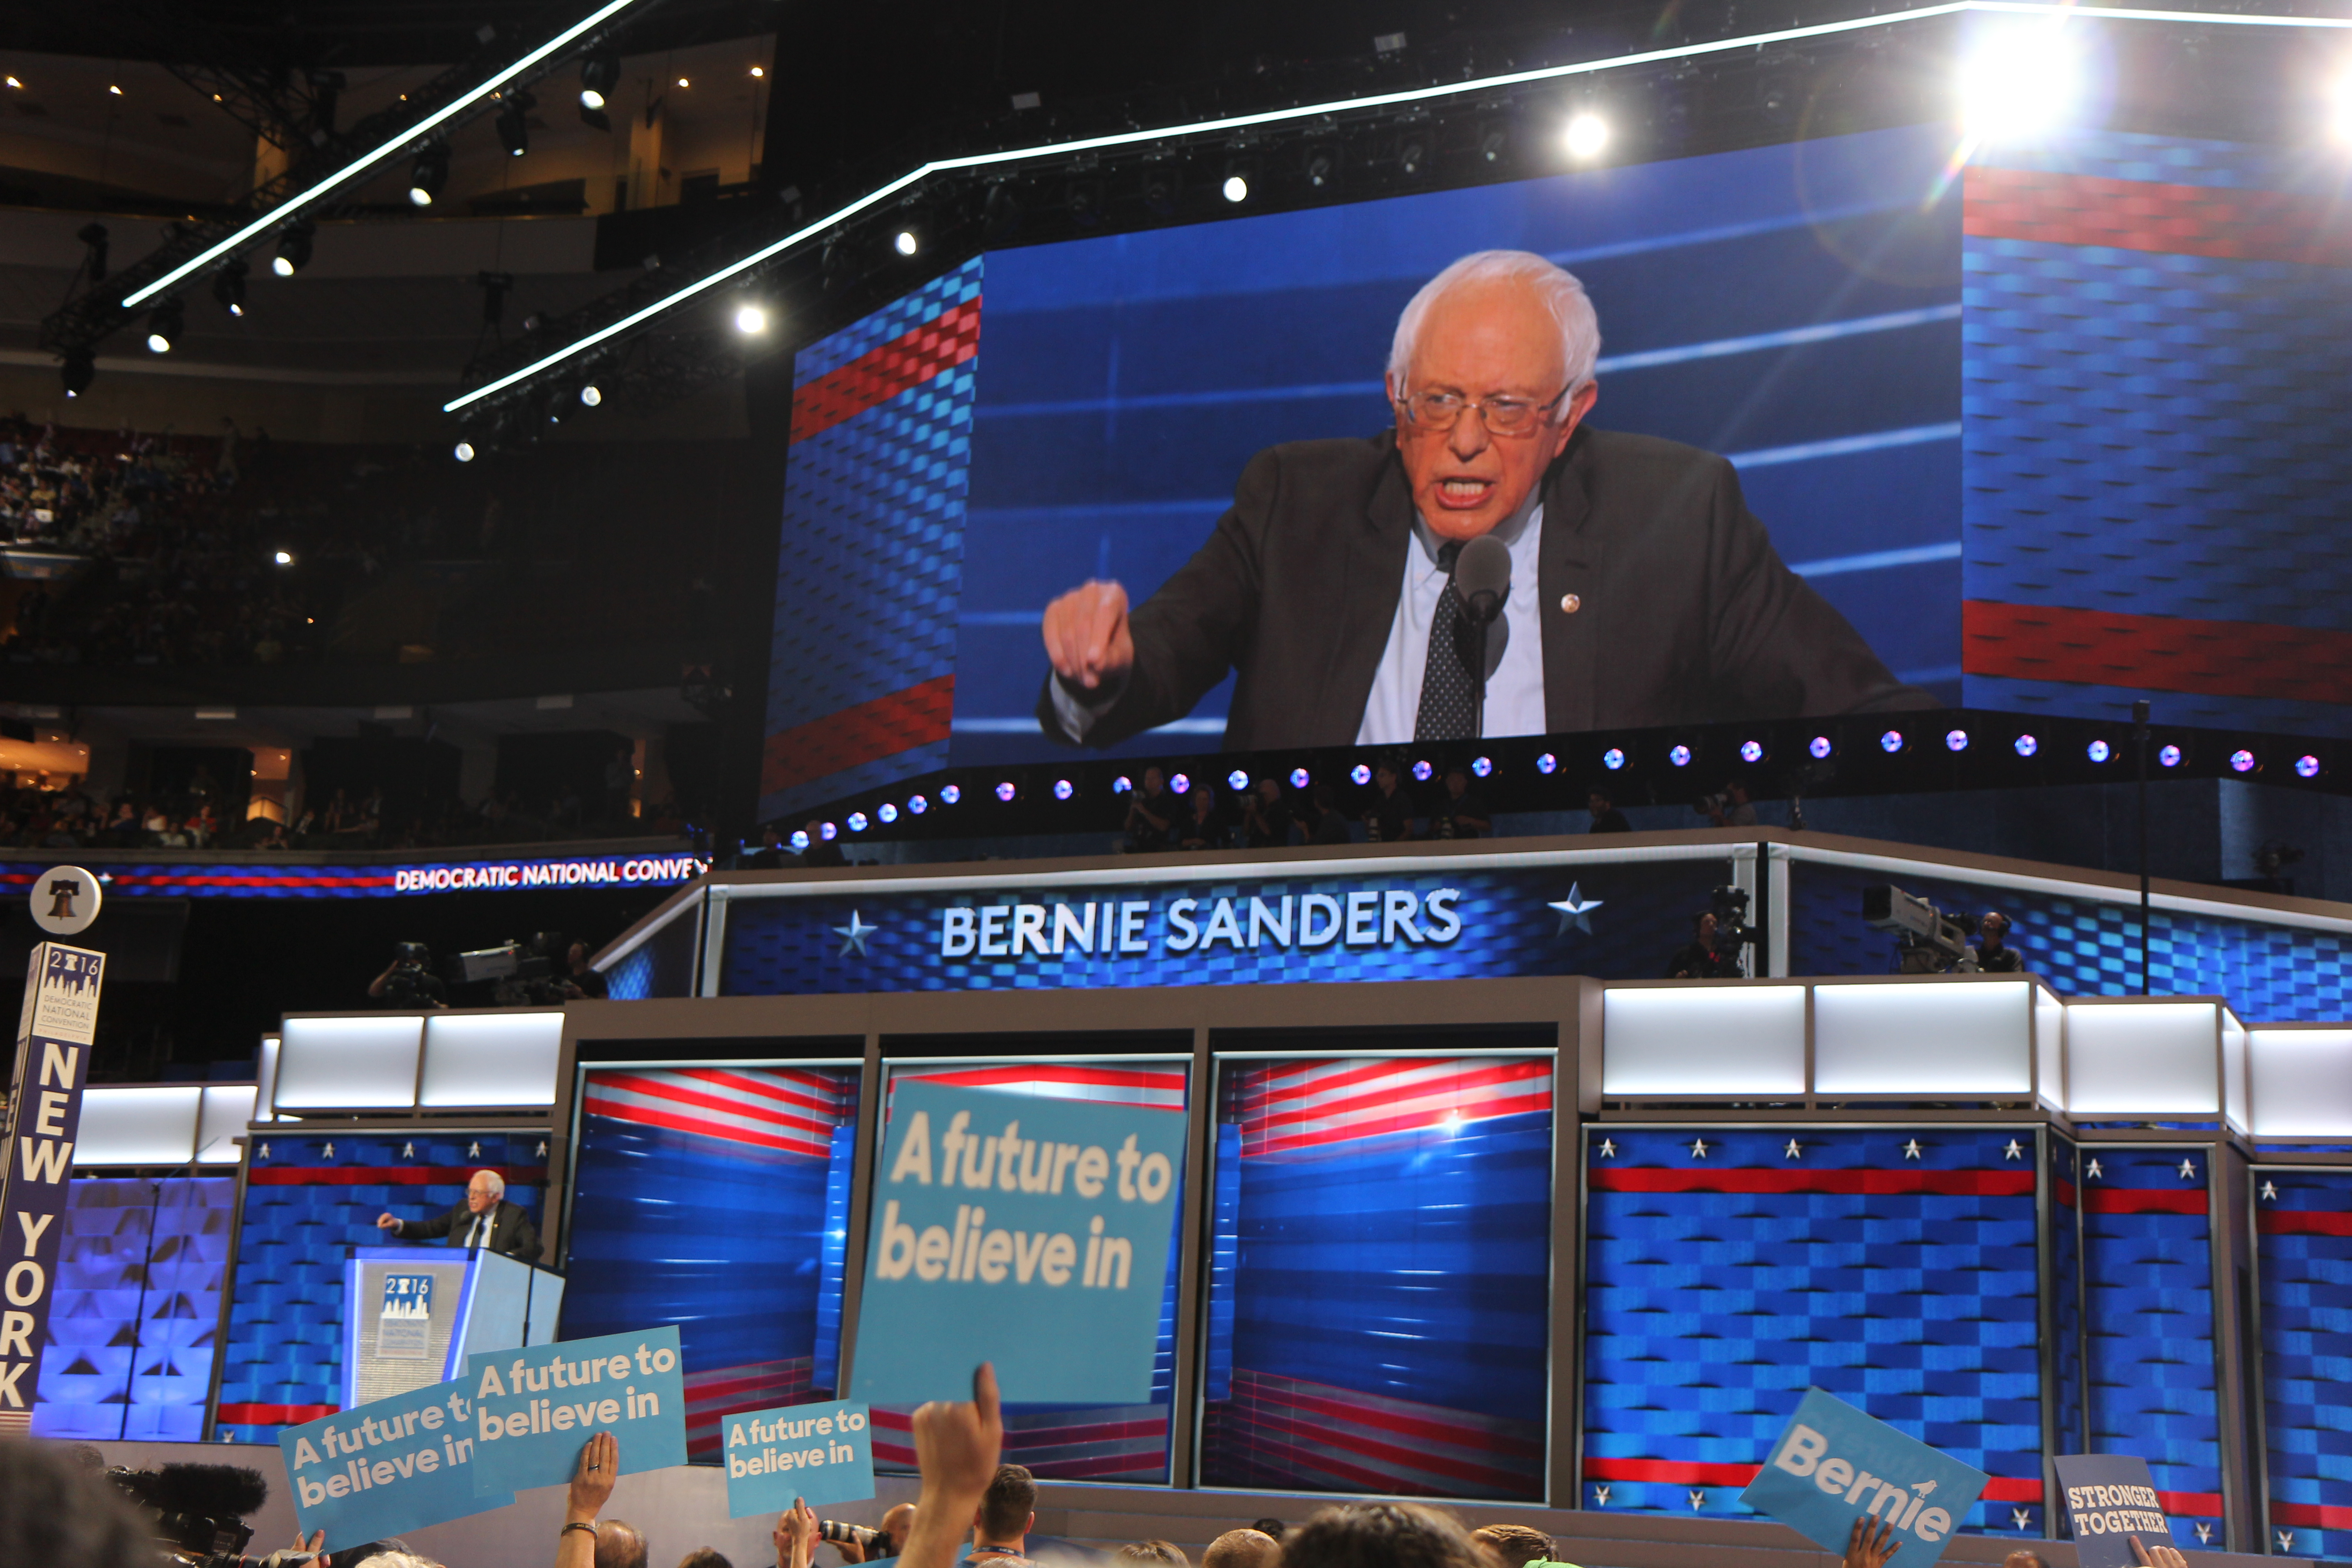 Bernie Sanders urged his supporters to rally behind Hillary Clinton.